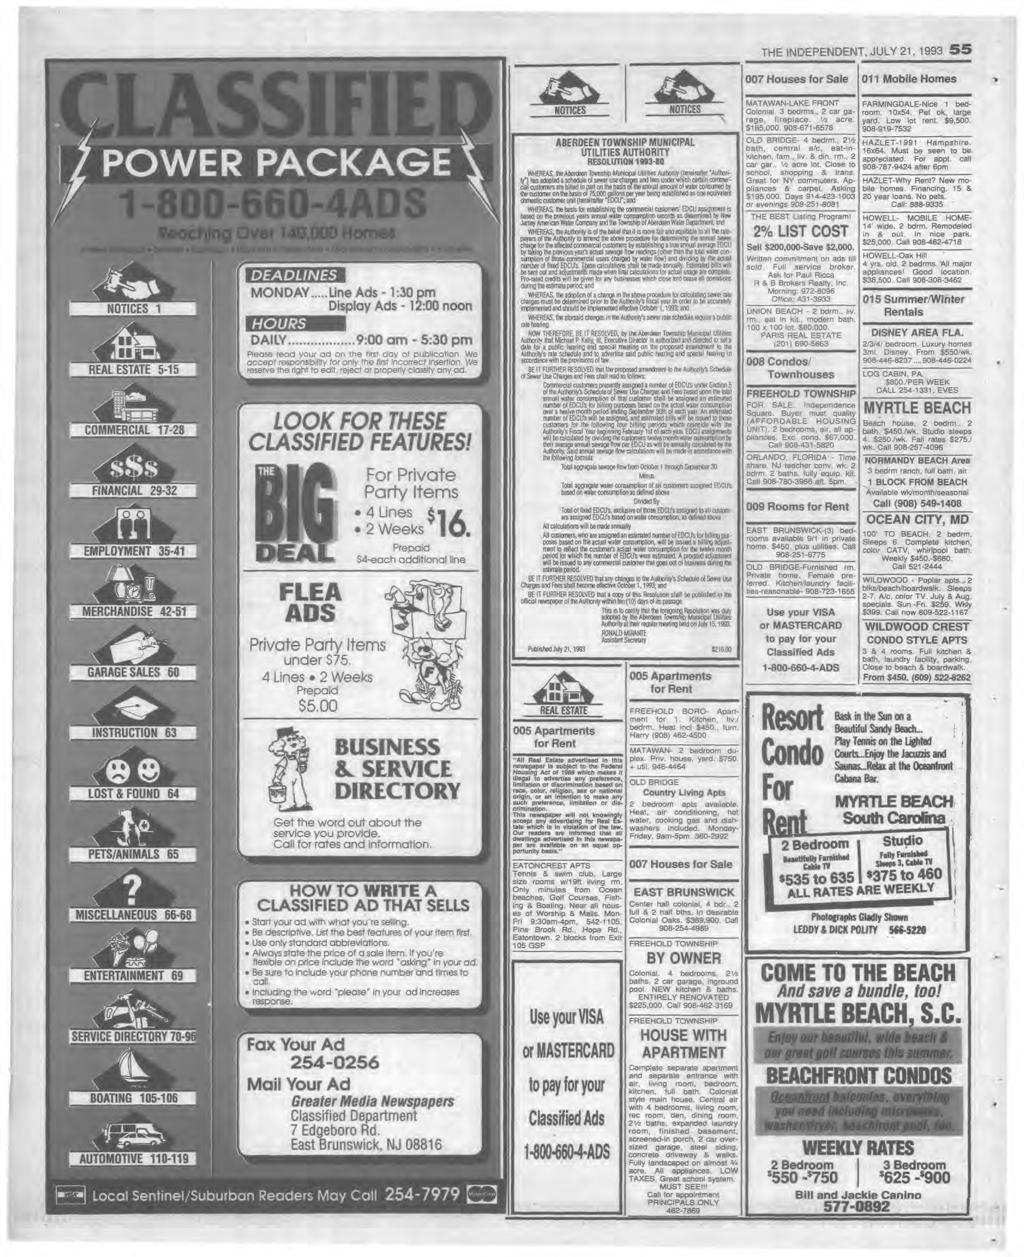 E V R Y D T A I L S O Pdf Angie39s List Tip Older Homes With Defective Circuit Breakers The Independent July 21 1993 5 007 Houses For Sale 011 Mobile